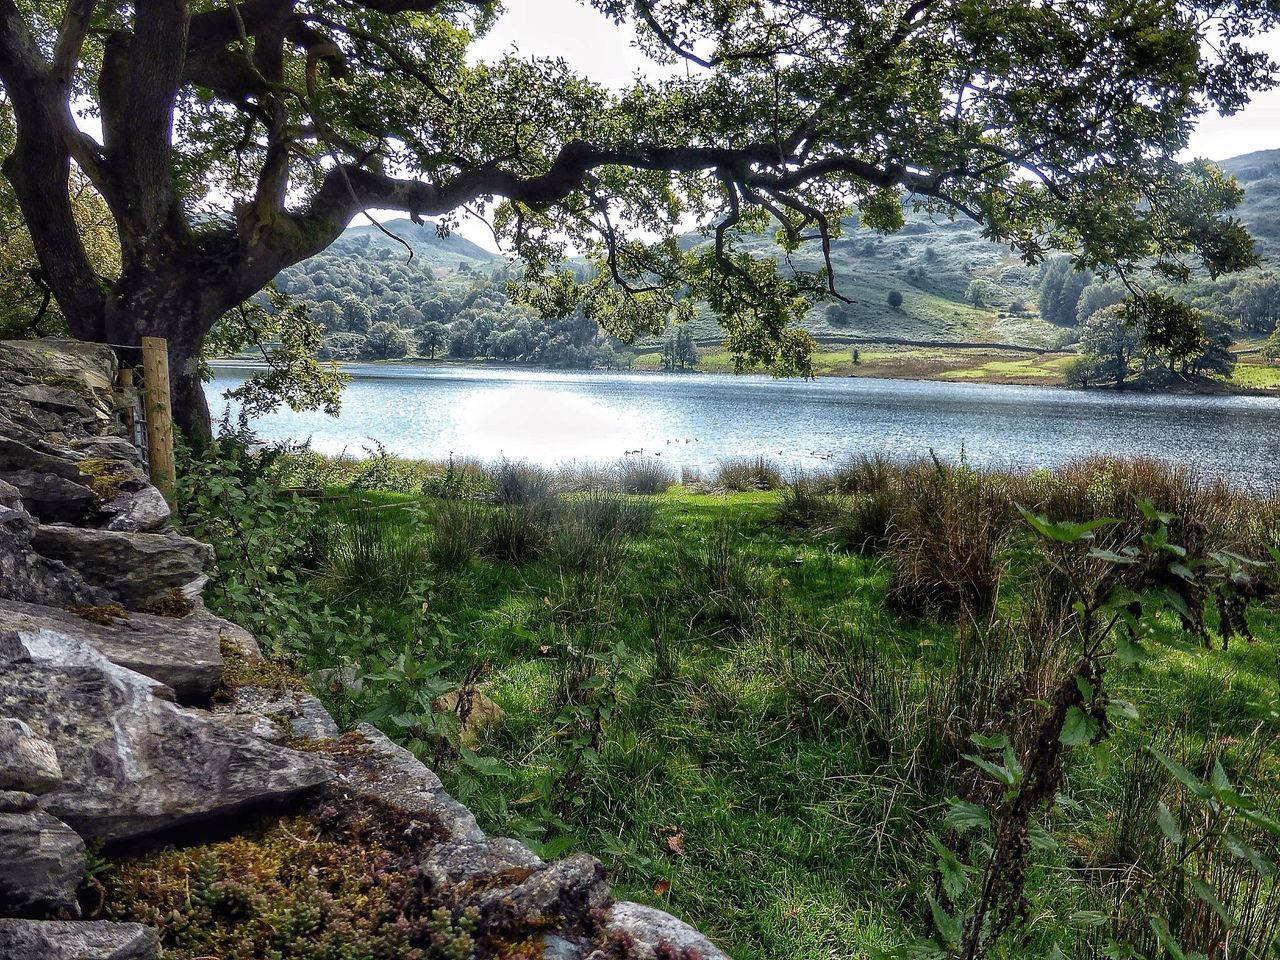 tree, beauty in nature, water, nature, scenics, tranquil scene, lake, growth, tranquility, day, no people, grass, landscape, outdoors, green color, branch, plant, travel destinations, mountain, sky